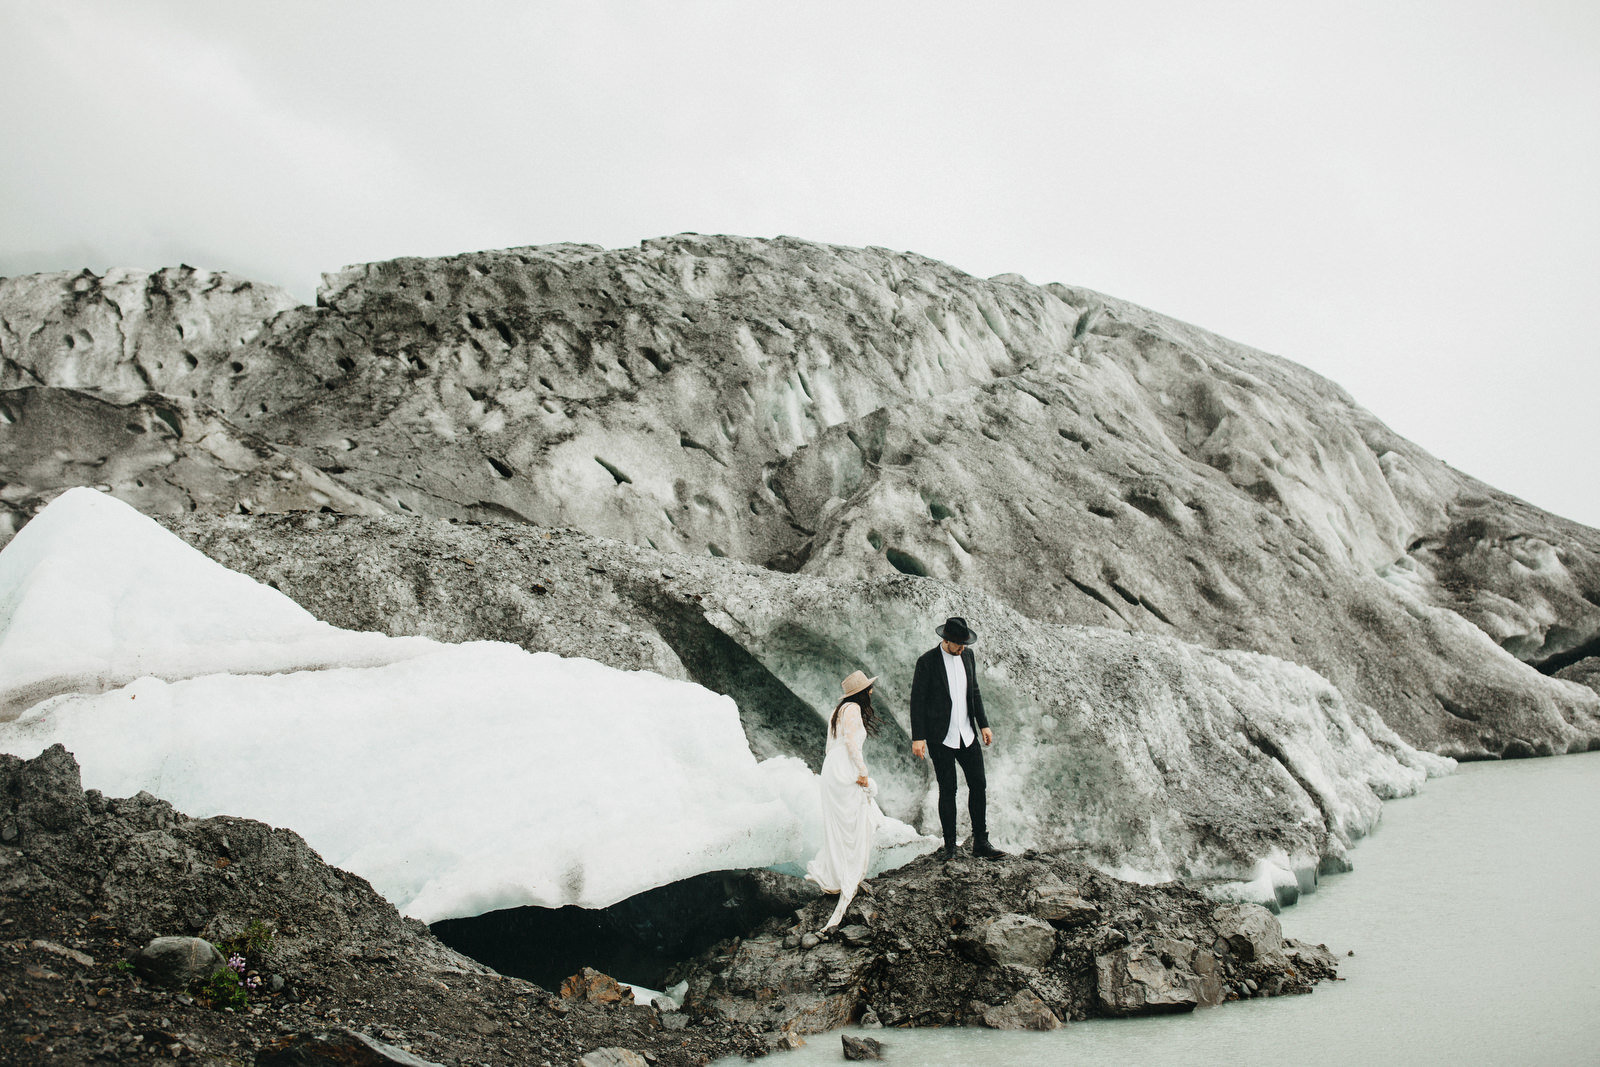 athena-and-camron-alaska-elopement-wedding-inspiration-india-earl-athena-grace-glacier-lagoon-wedding101